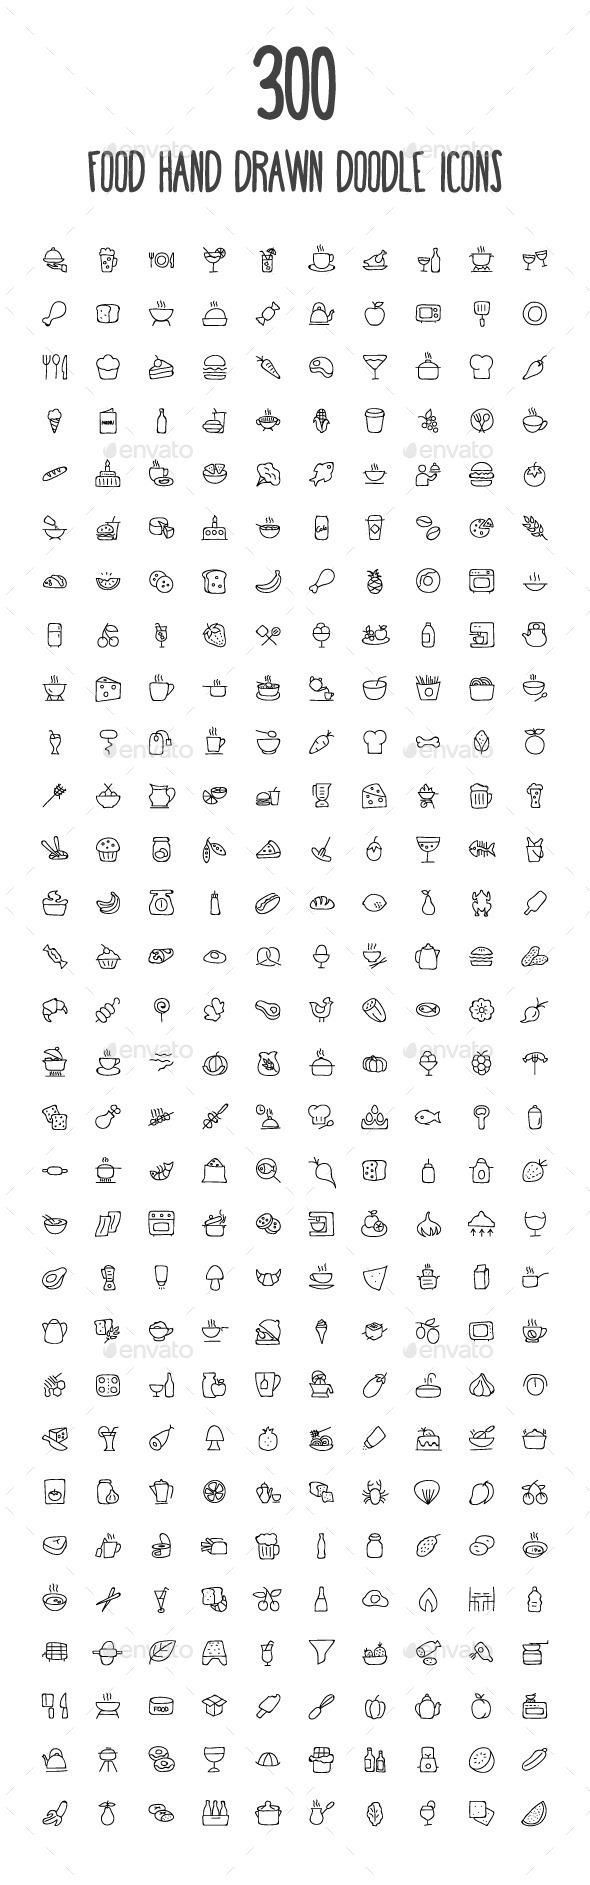 food hand drawn doodle icons hand drawn doodles and icons